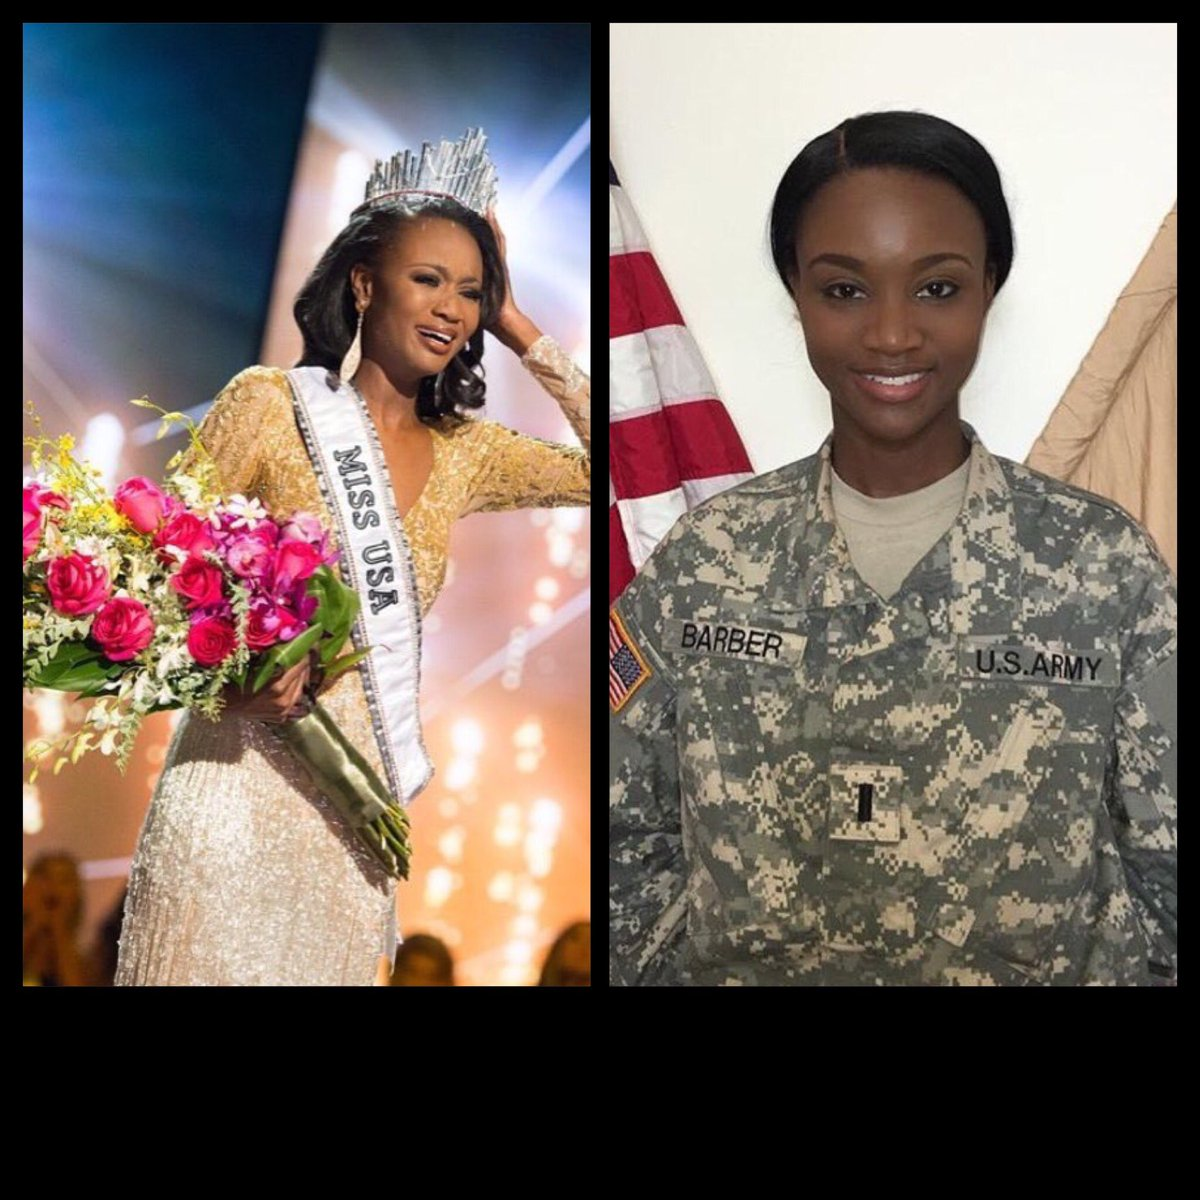 Congratulations to First Lieutenant Deshauna Barber who's the new  #MissUSA